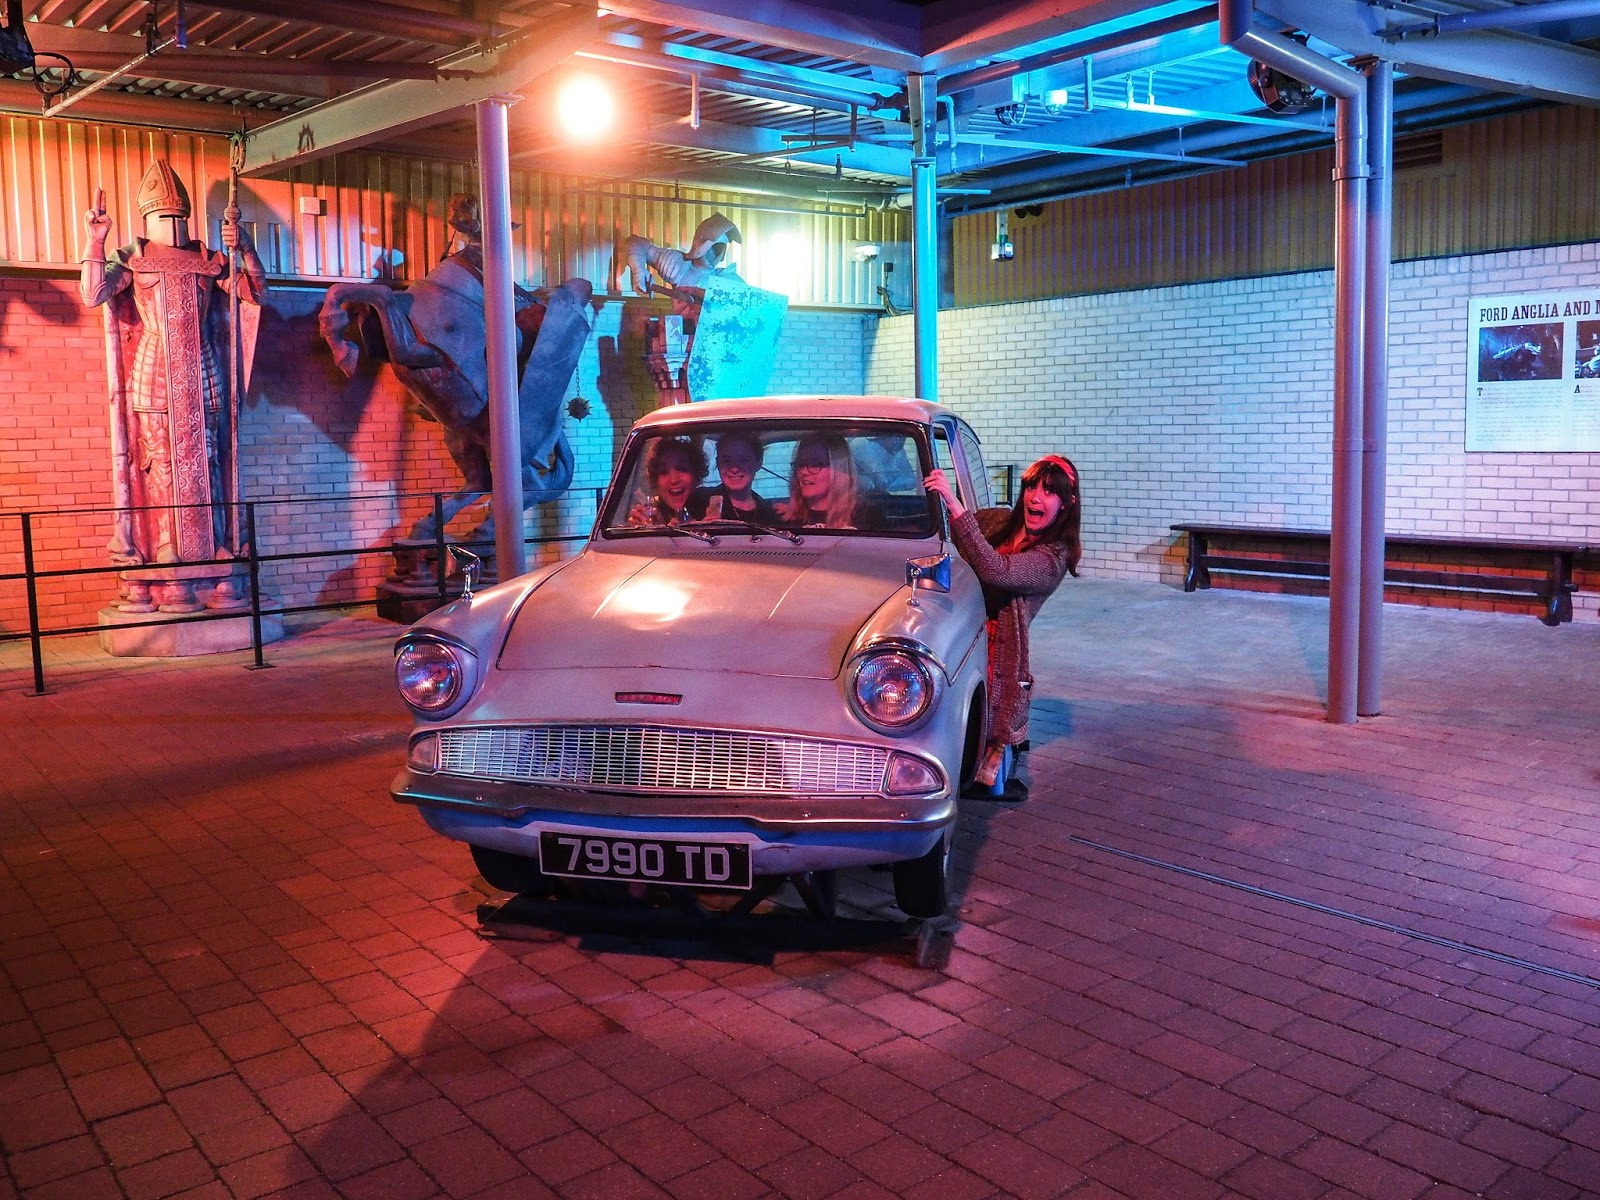 Ford Anglia at Harry Potter Warner Brothers Studio Tour